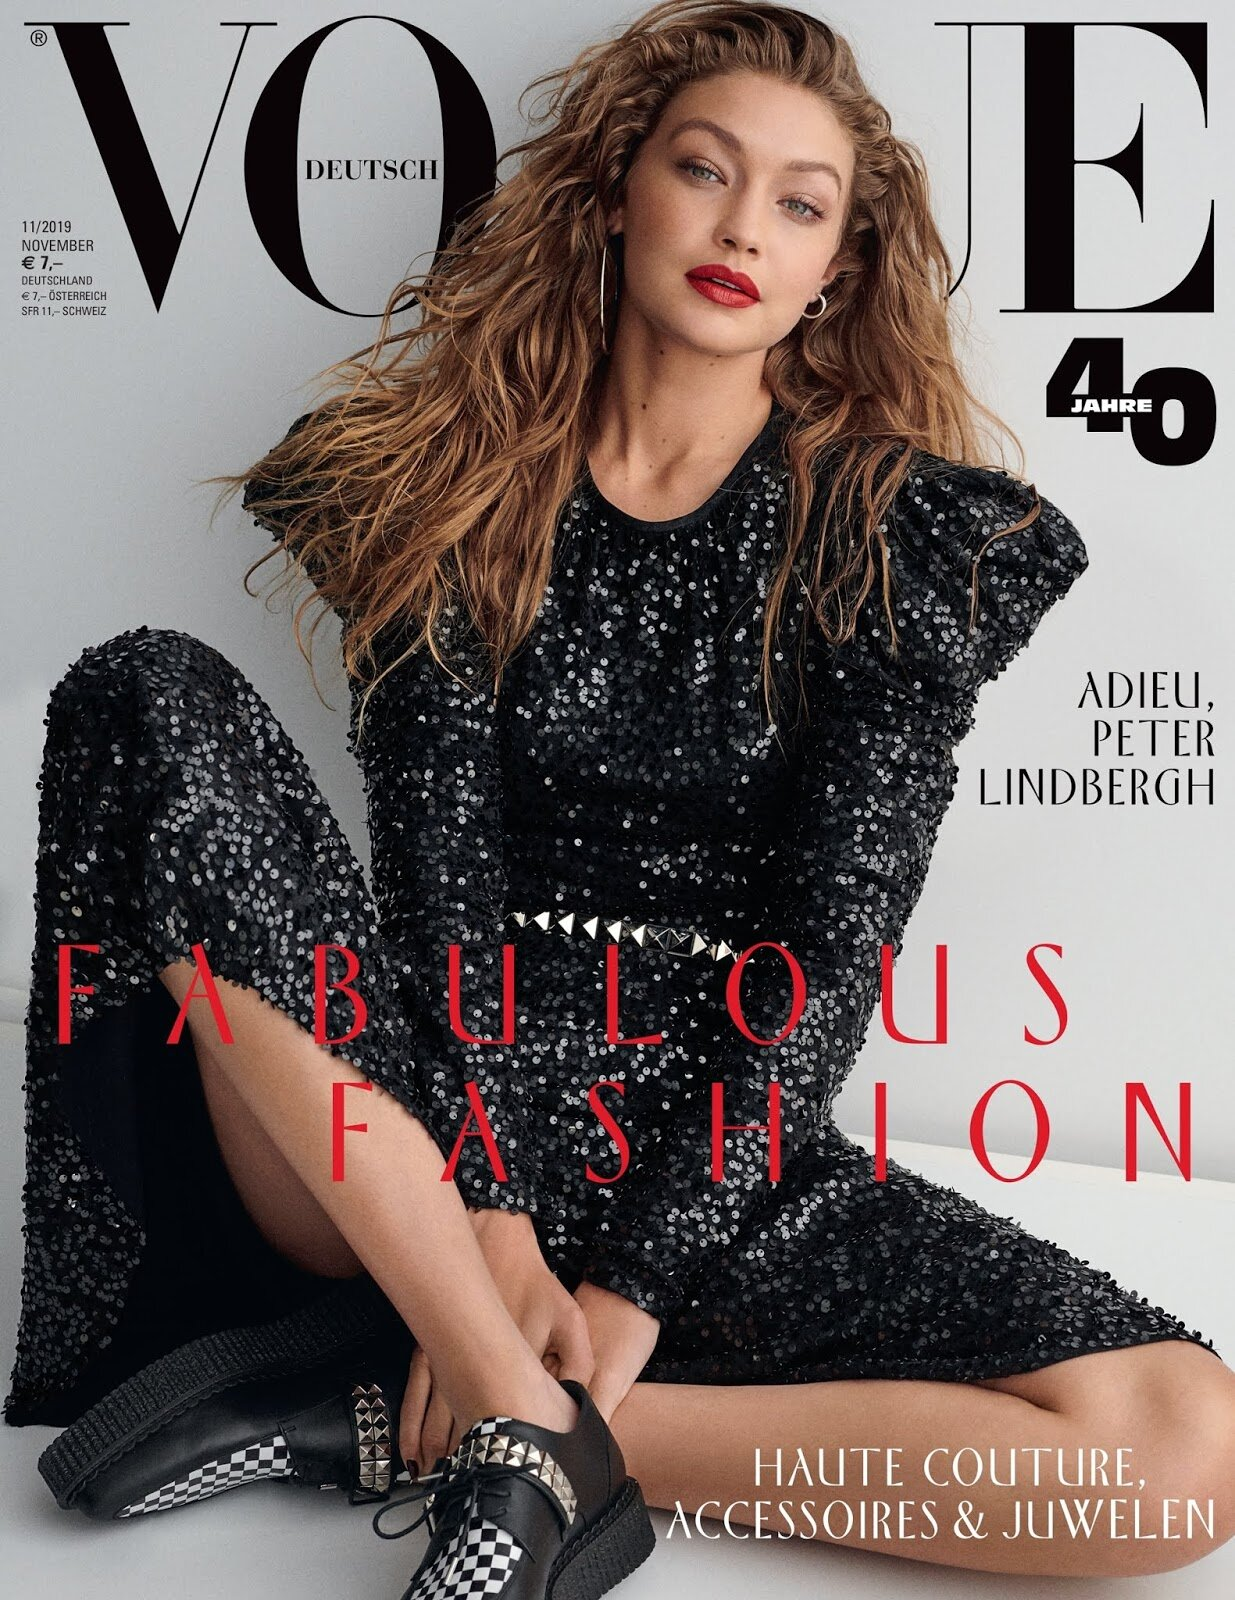 Gigi Hadid by Giampaolo for Vogue Germany November 2019 8 (2).jpg